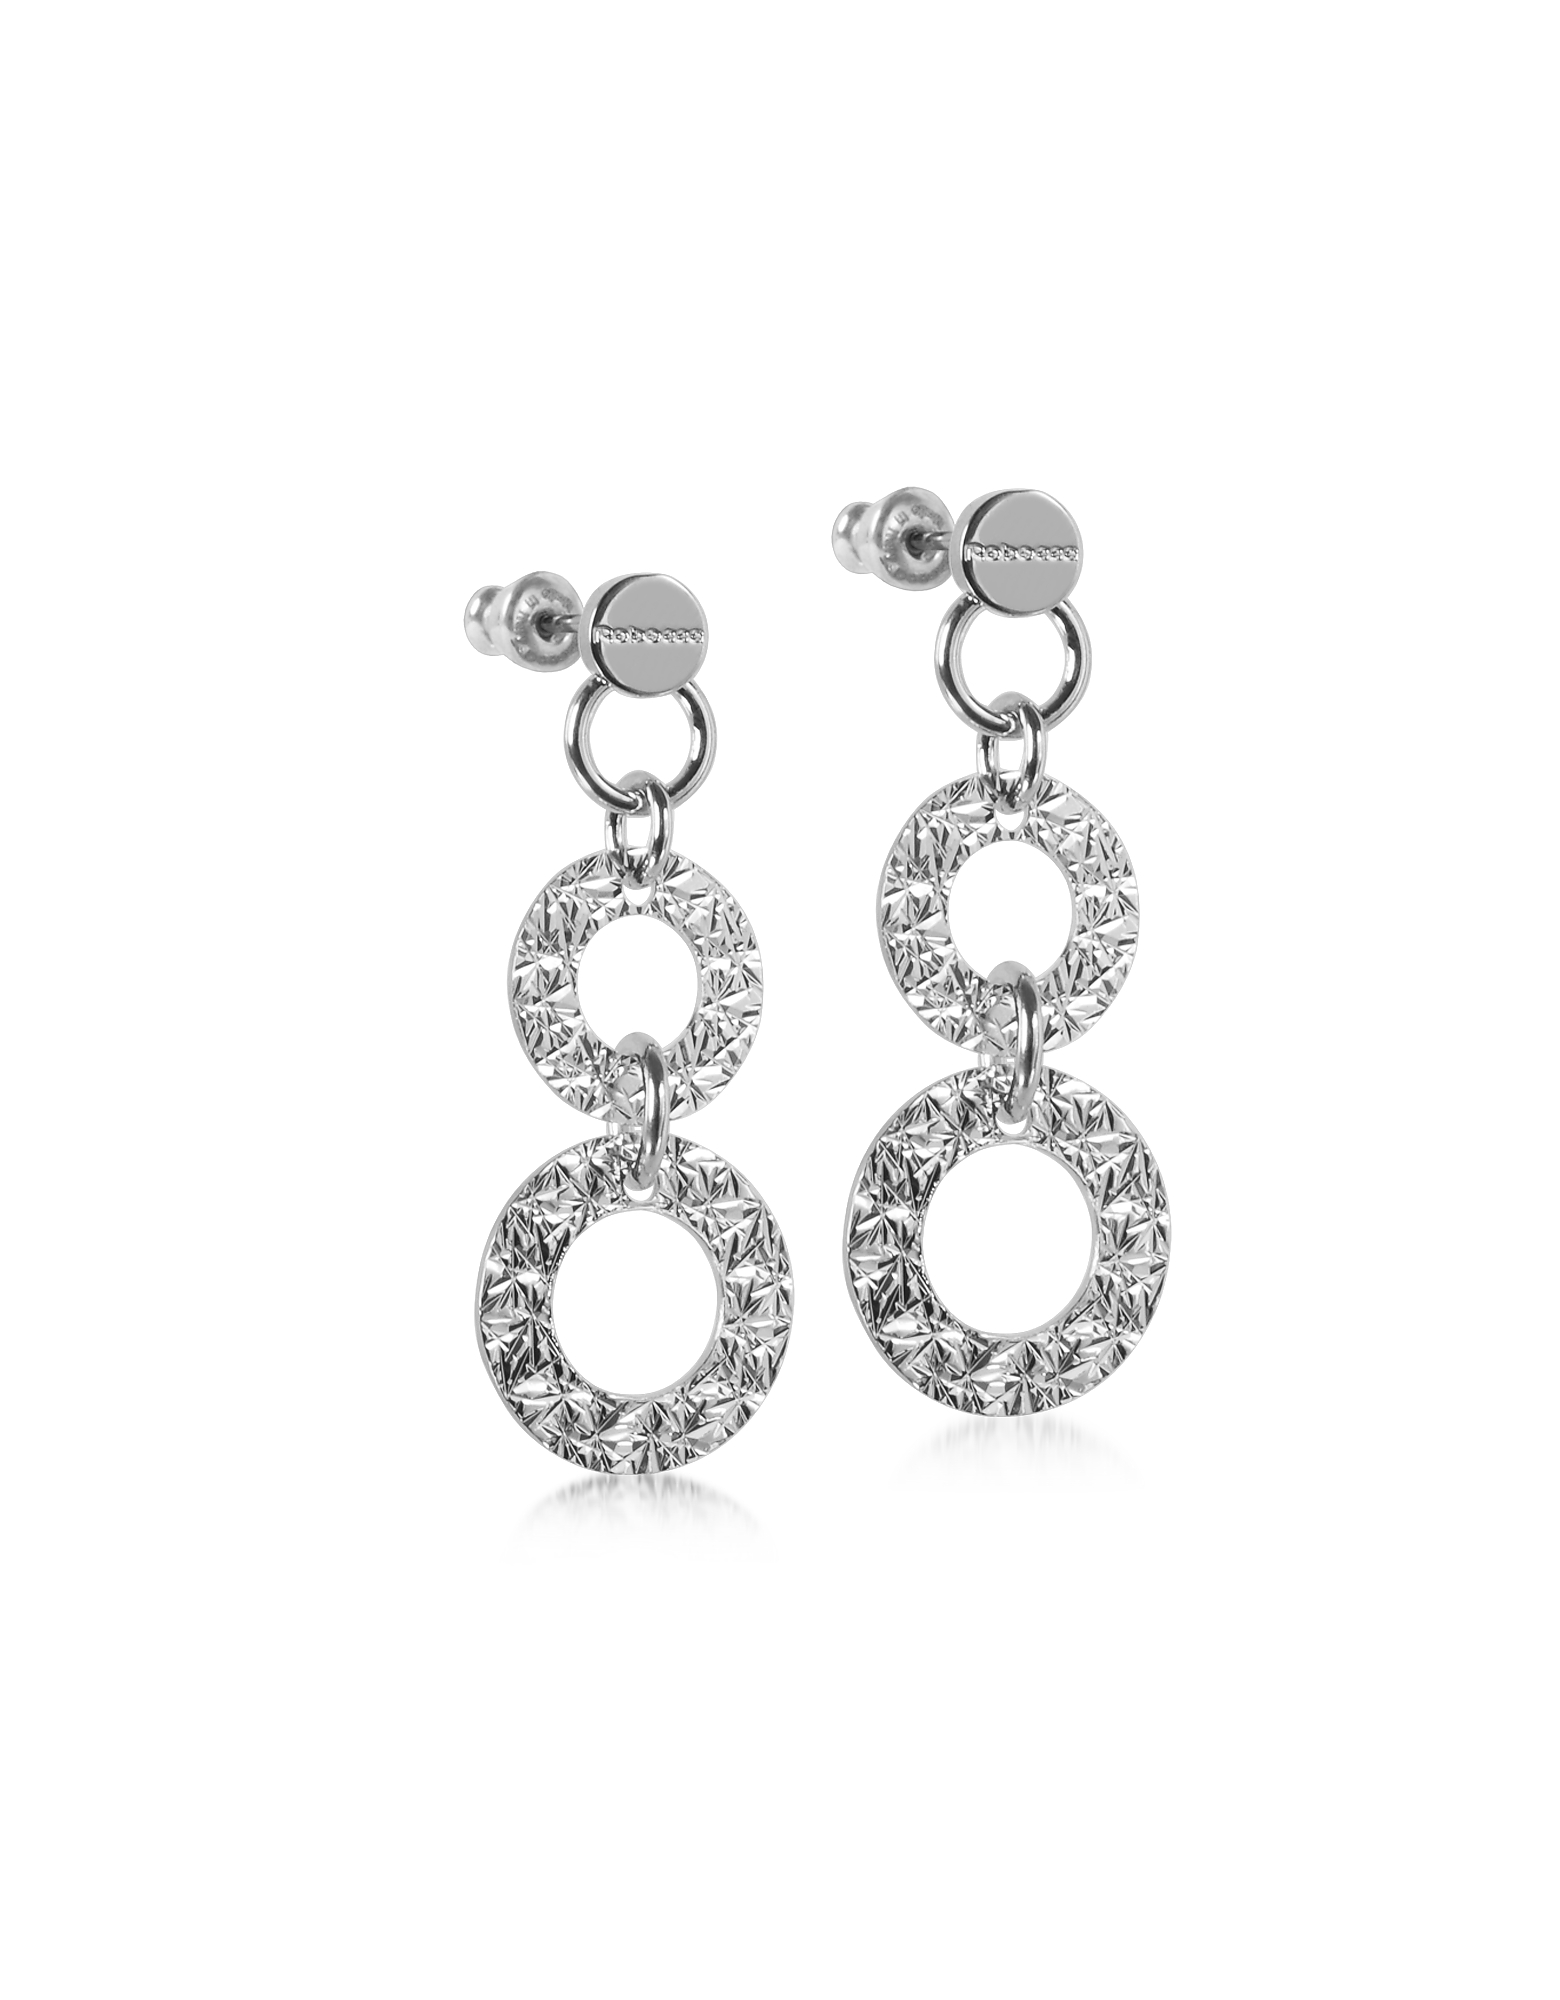 R-ZERO Rhodium Over Bronze Pendant Earrings, Silver